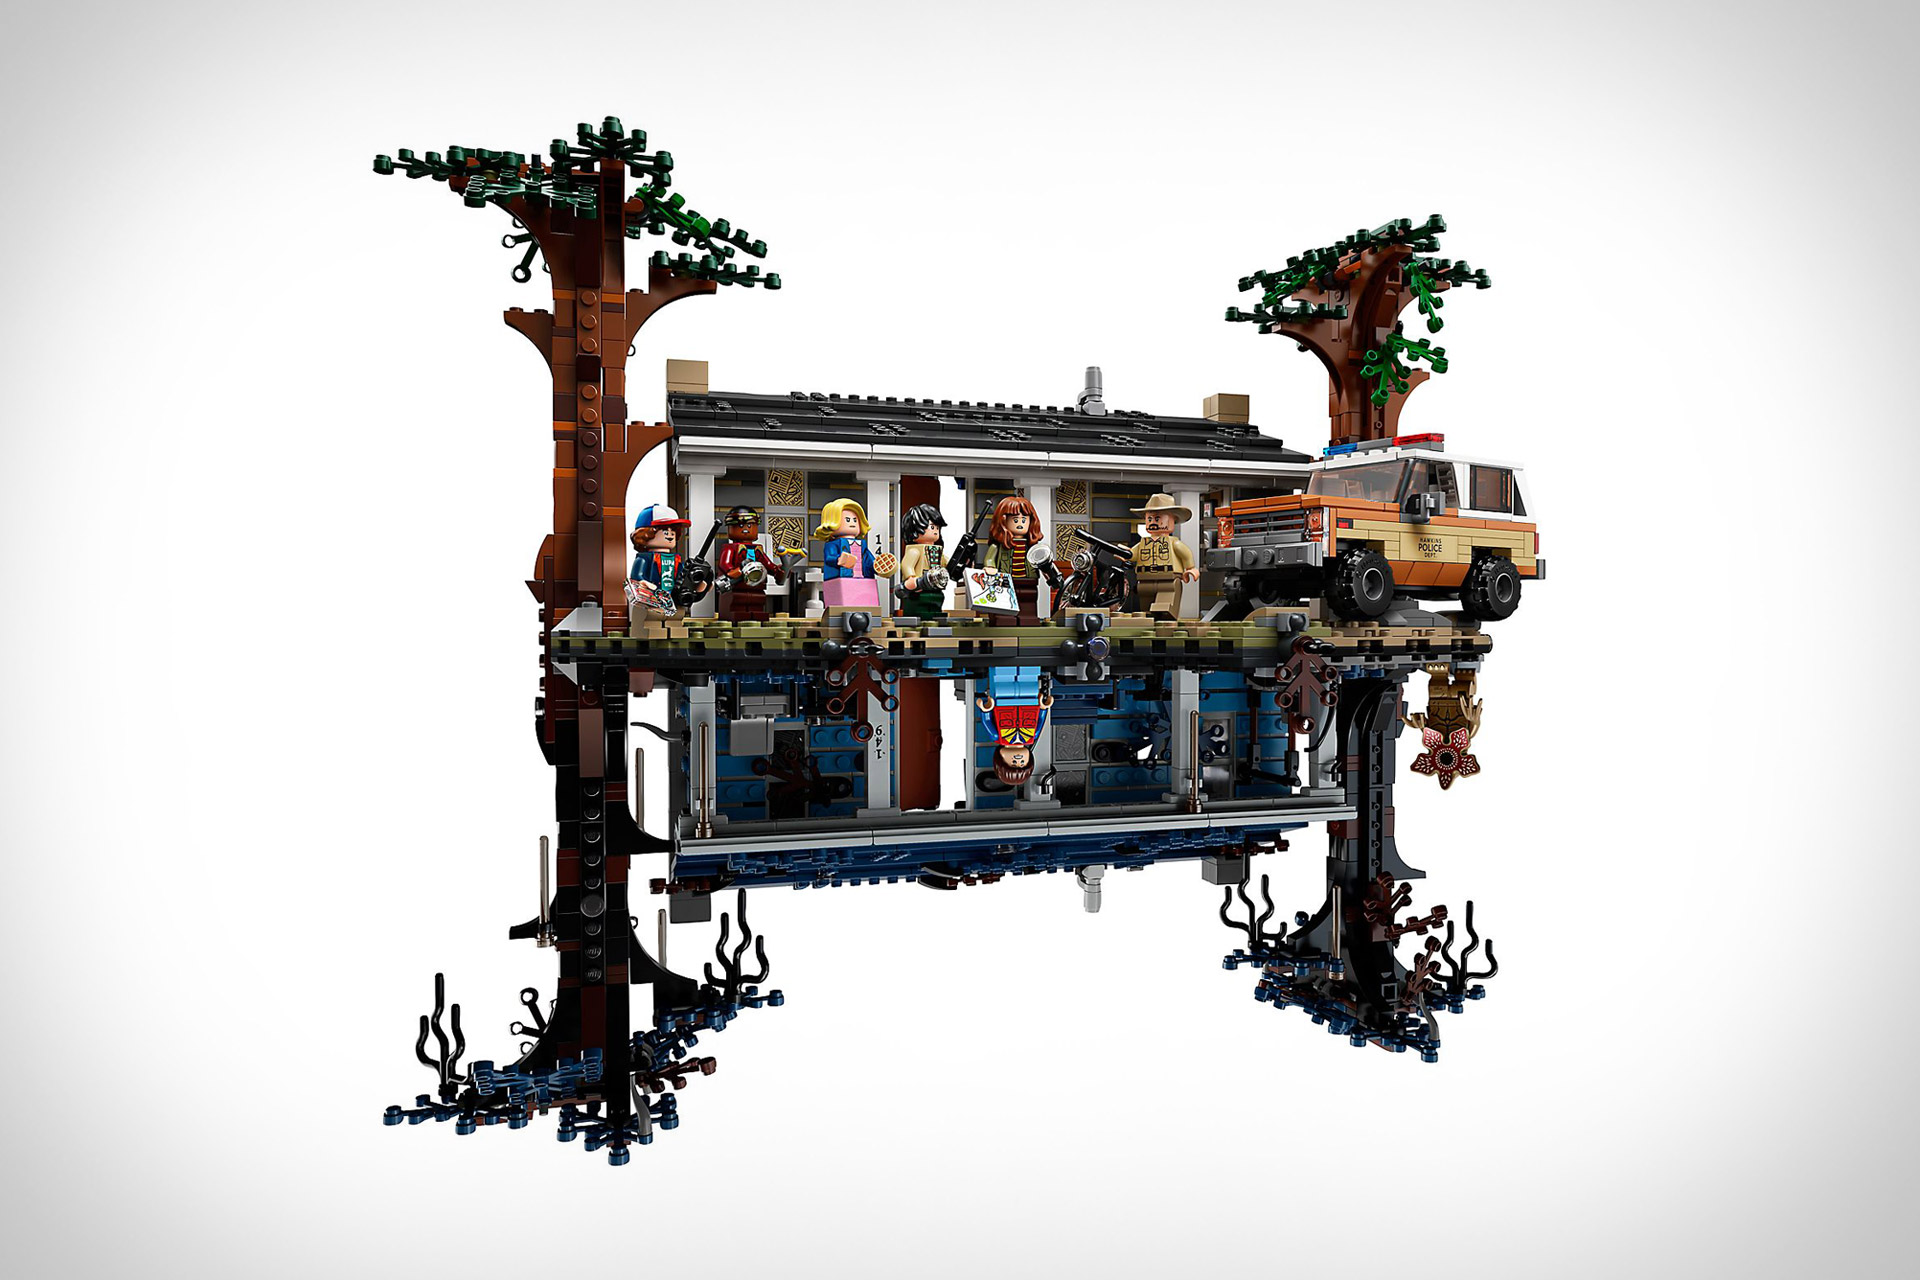 Lego Stranger Things The Upside Down Building Set